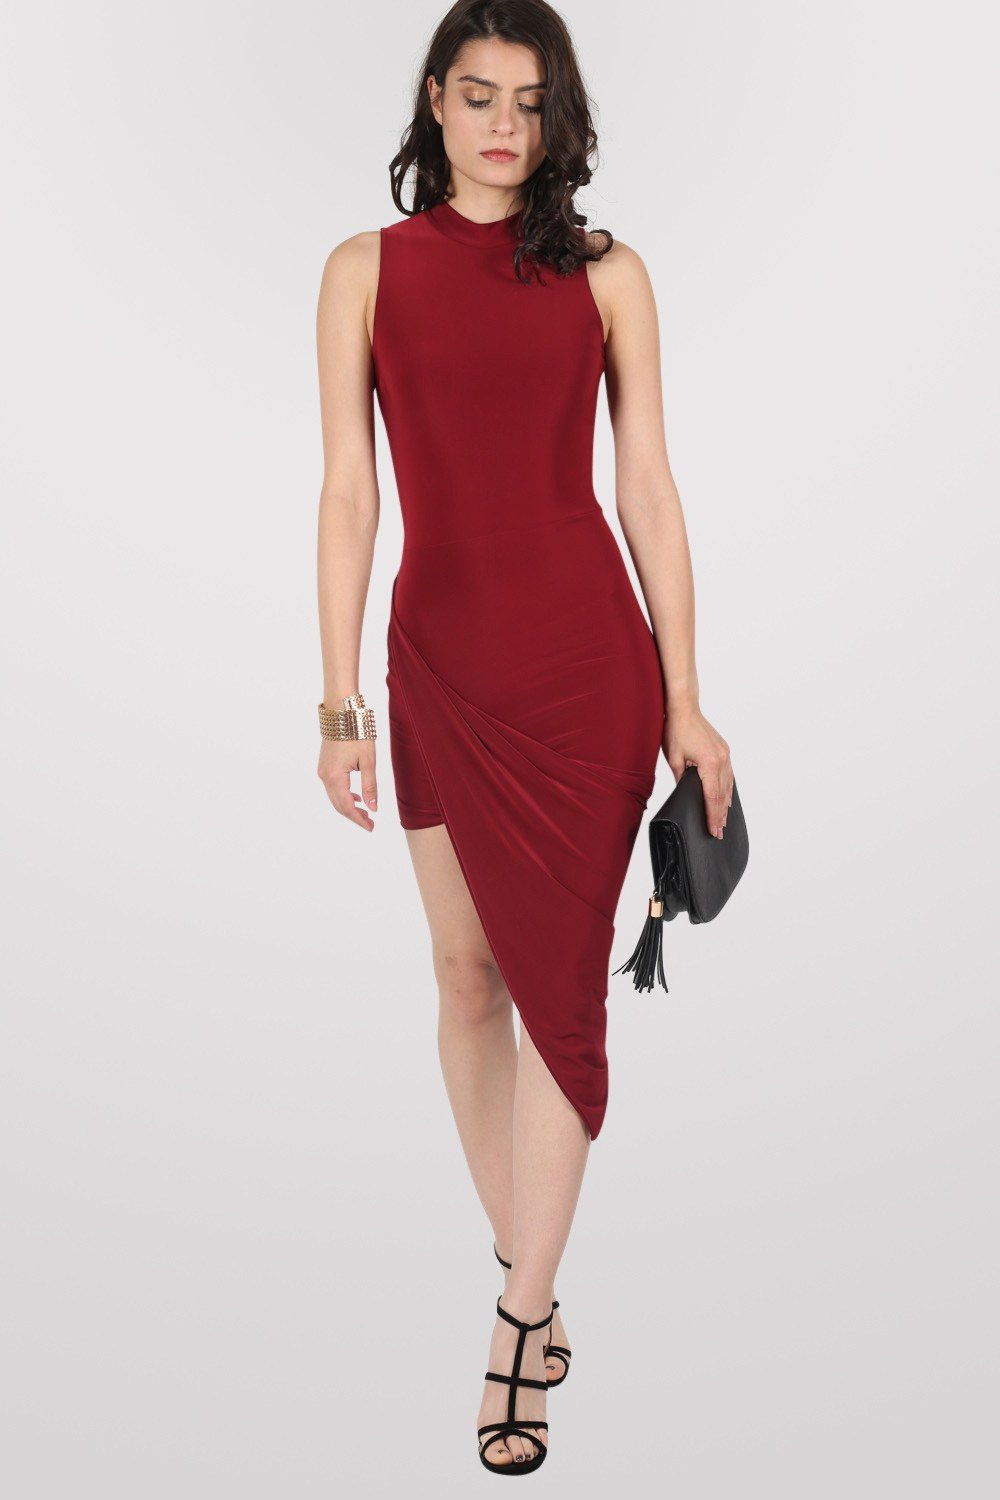 High Neck Asymmetric Bodycon Dress in Burgundy Red 0